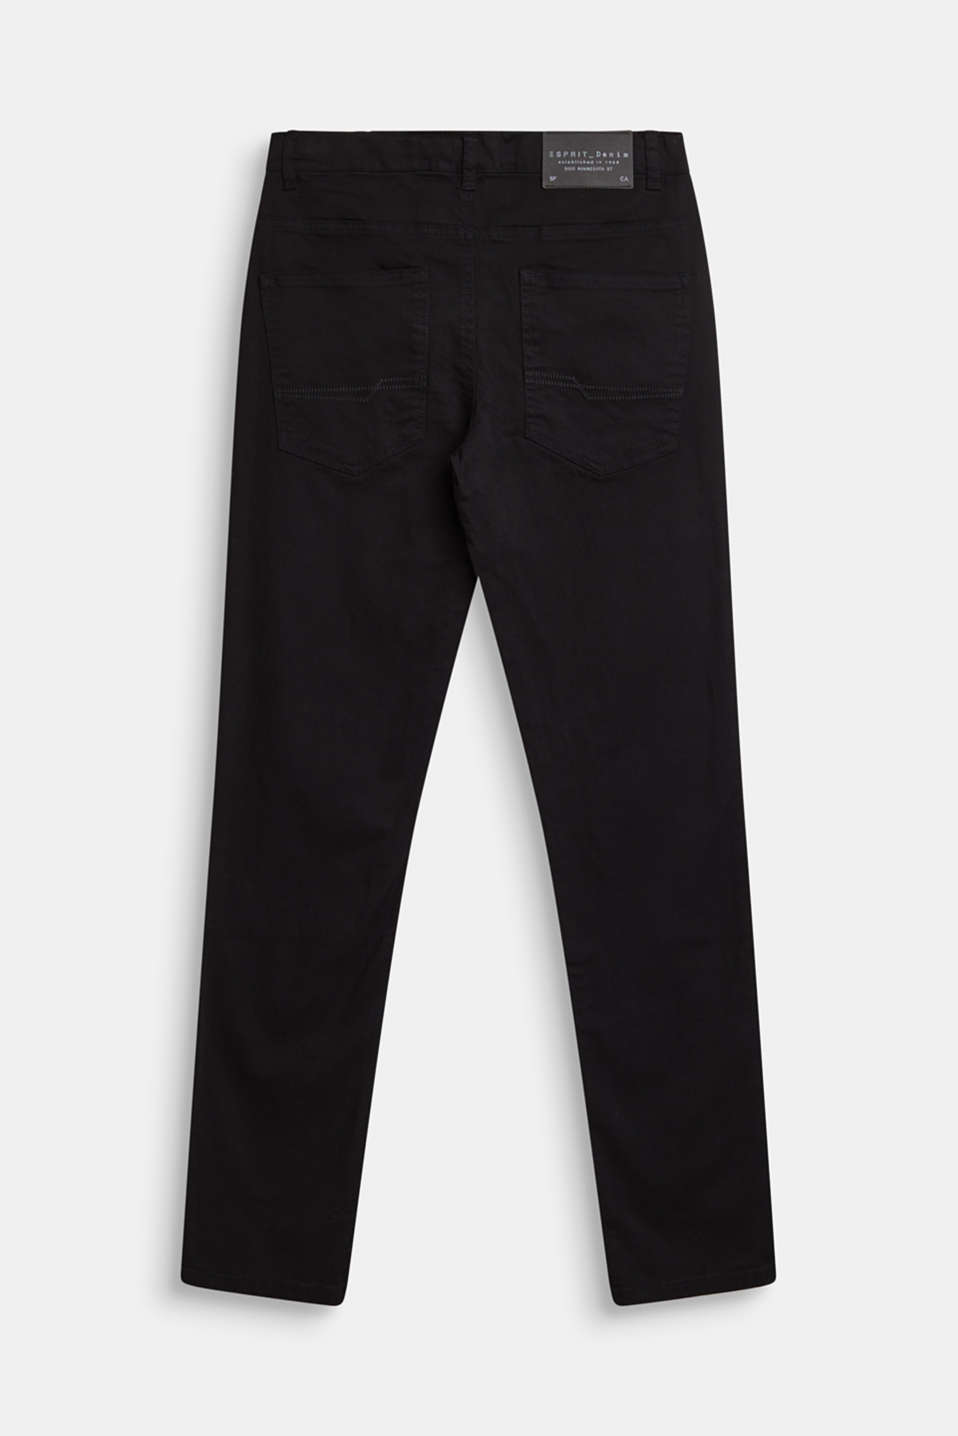 Coloured stretch jeans, adjustable waistband, LCBLACK, detail image number 1